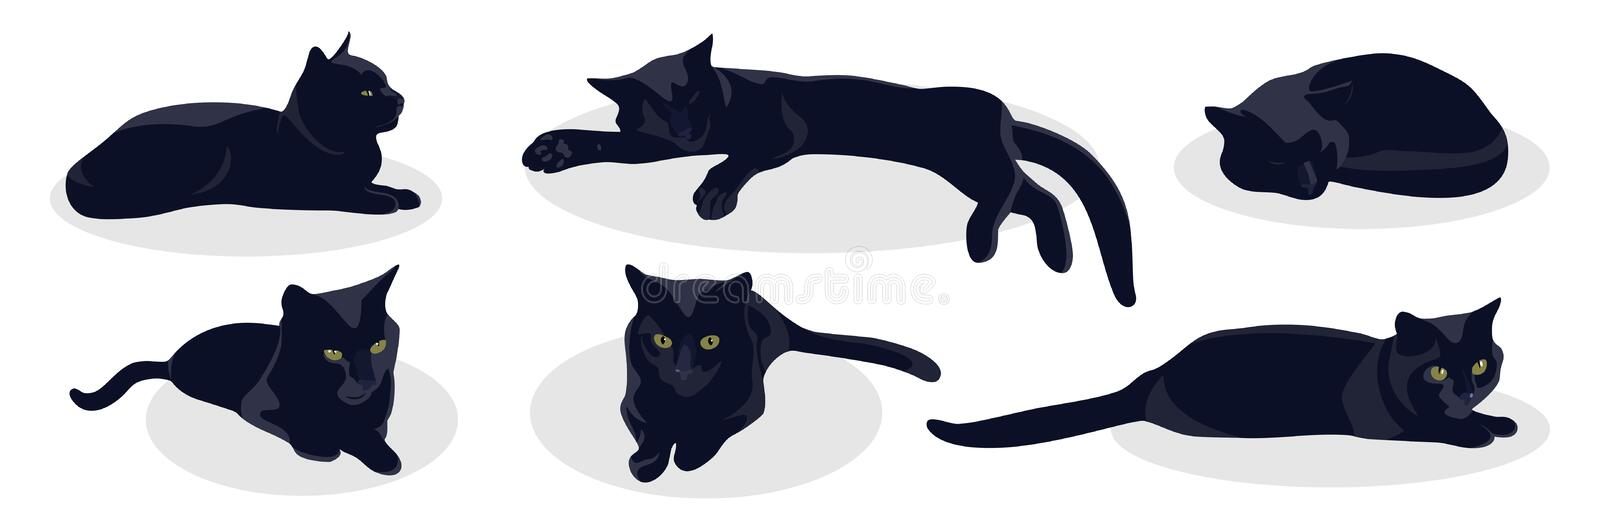 Le chat noir se situe dans diverses poses d'isolement sur le fond blanc illustration stock